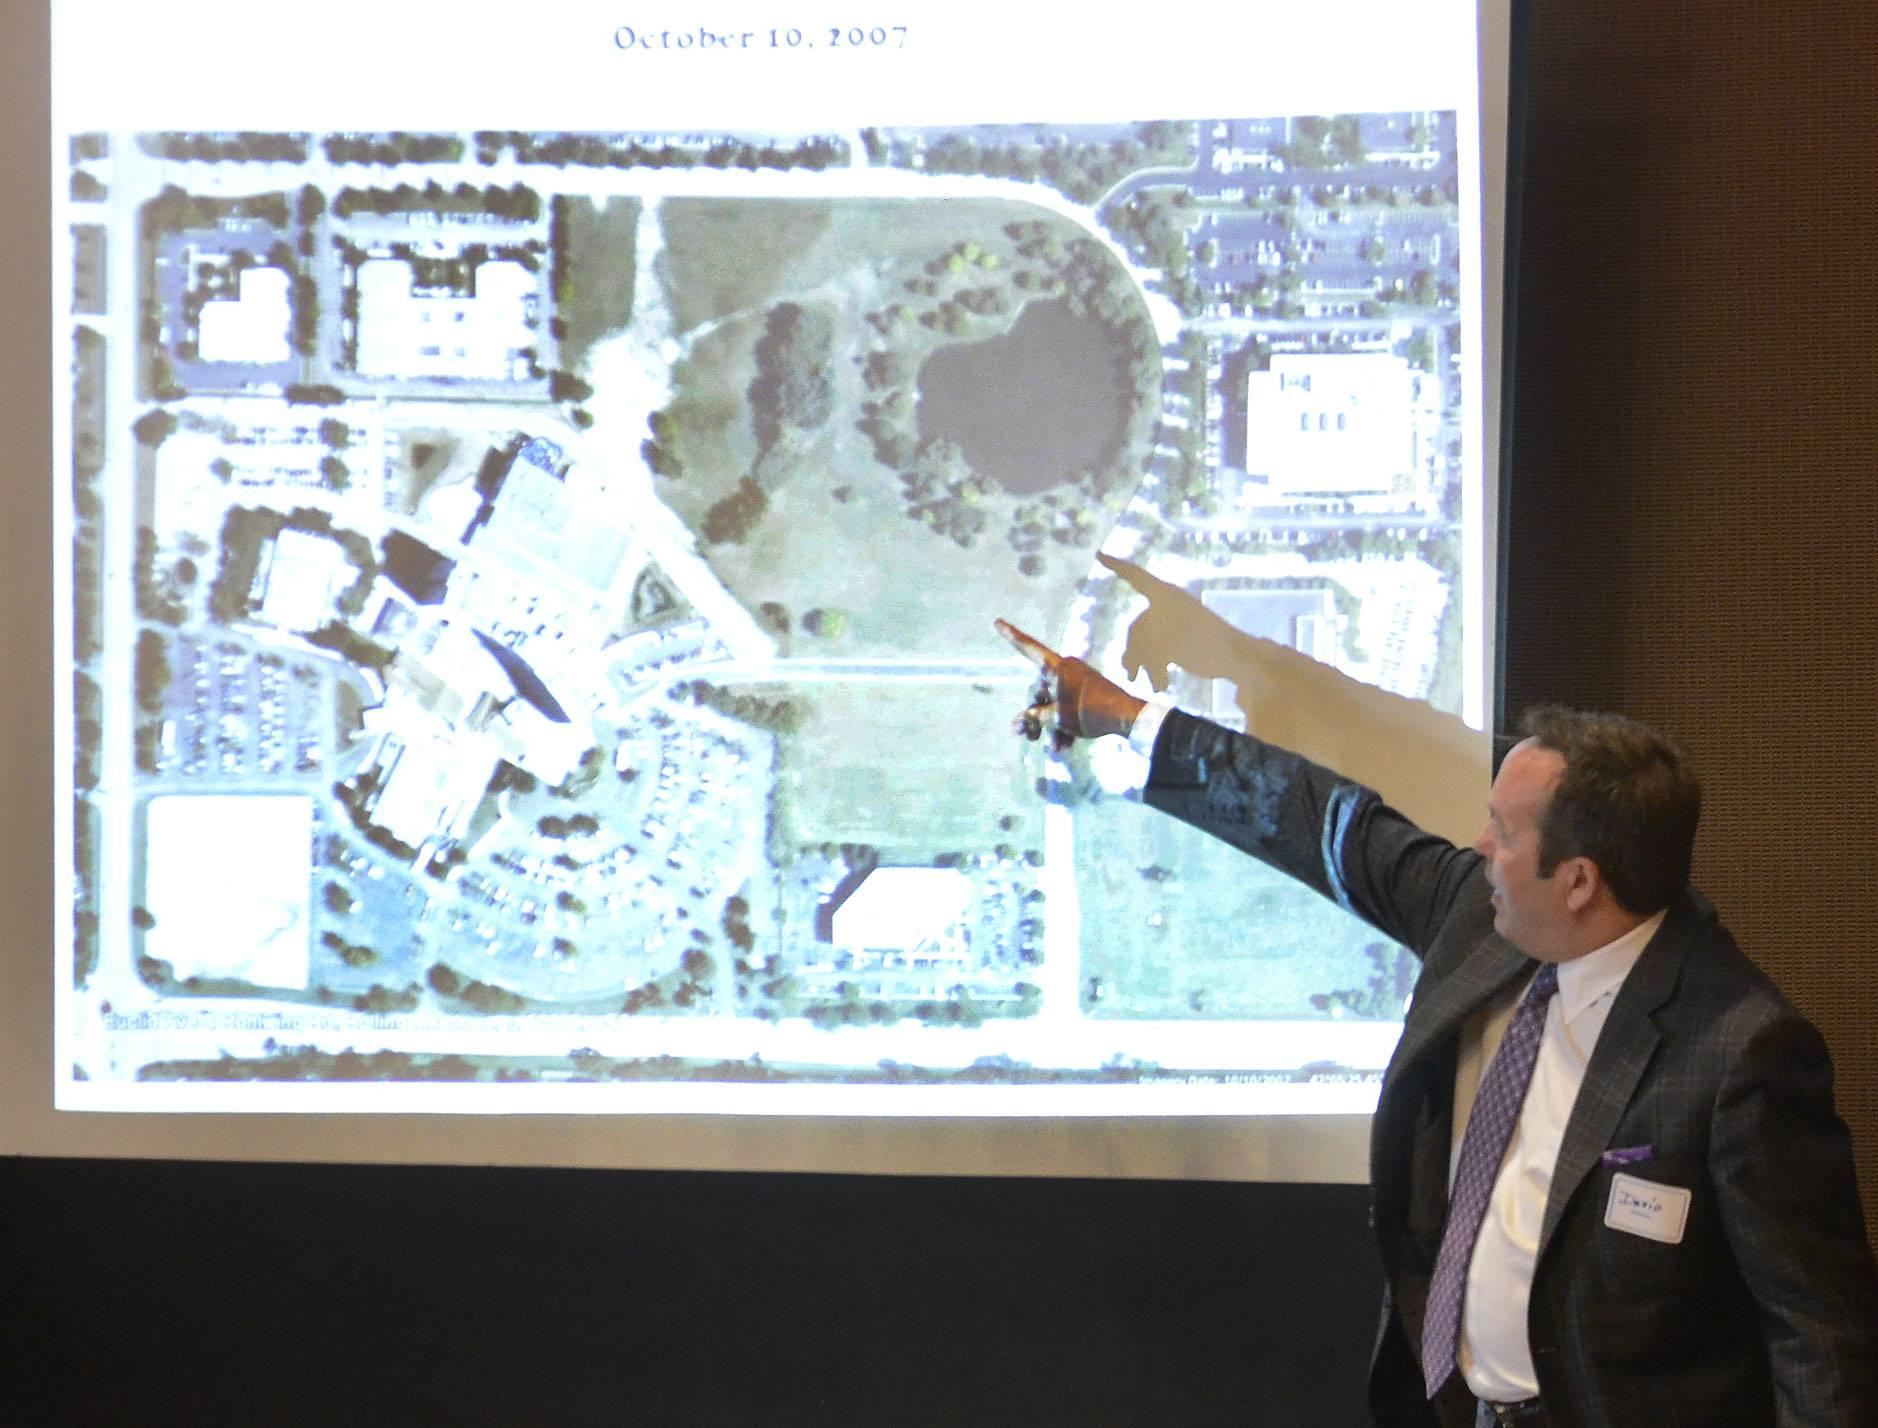 David Trandel, CEO of Stonestreet Partners, describes the layout of the Arlington Downs project.